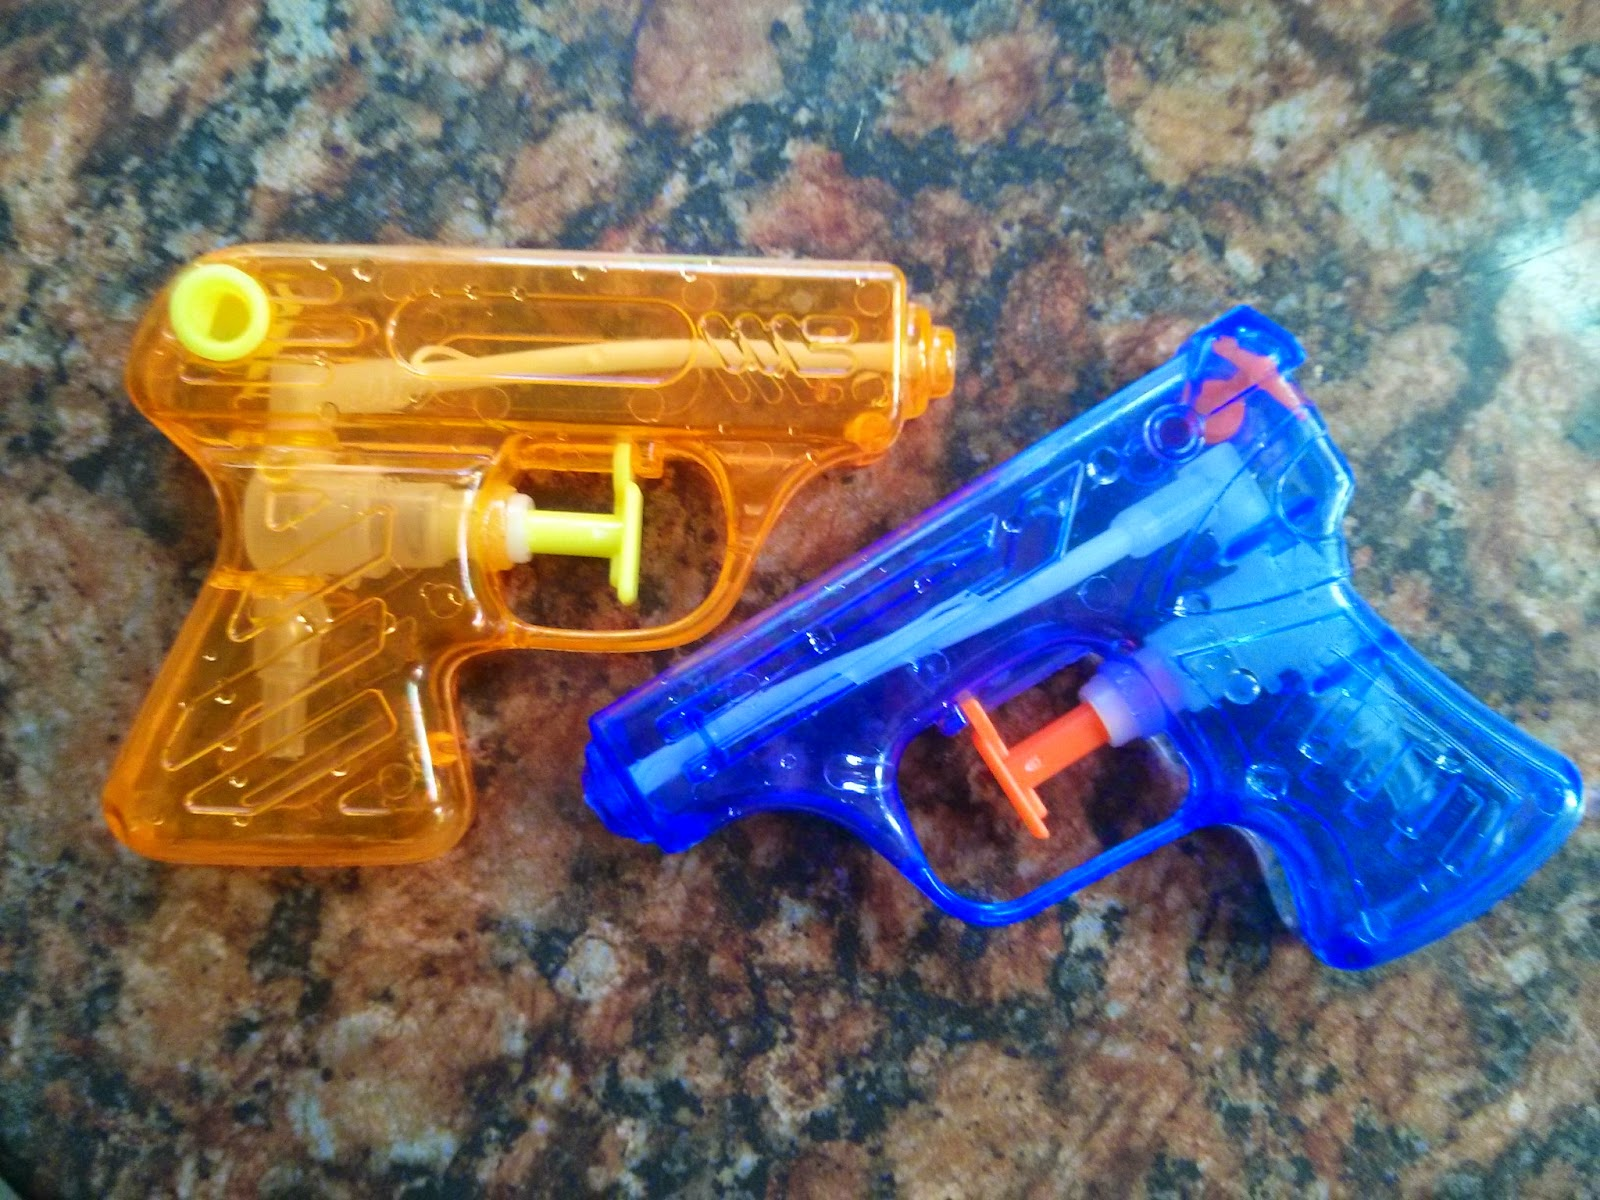 Two new Waterpistols